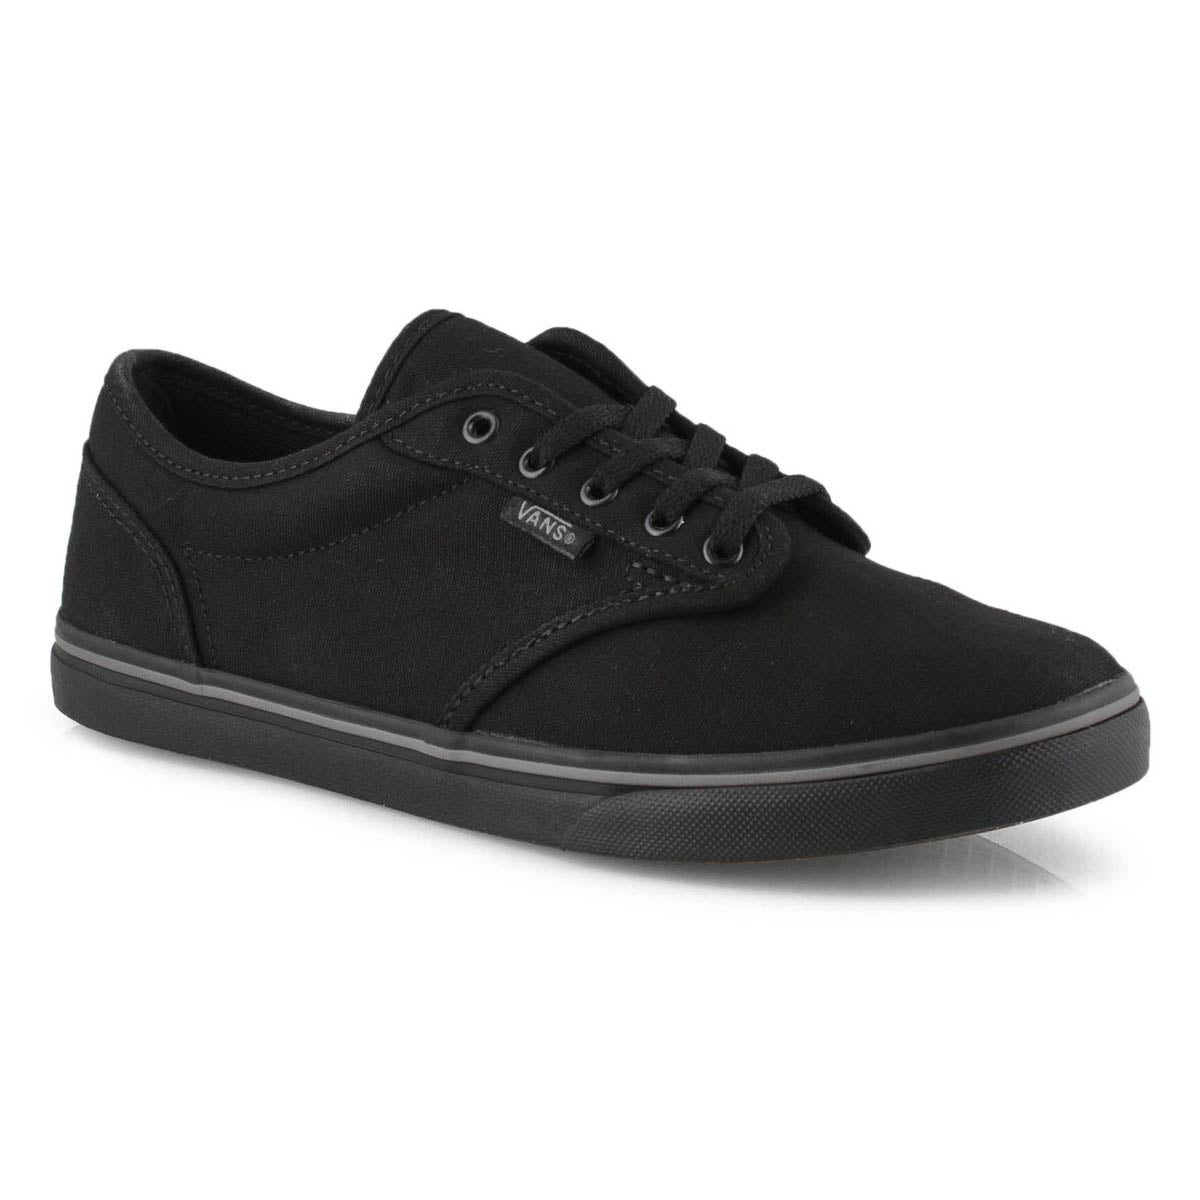 Lds Atwood Low blk/blk lace up sneaker